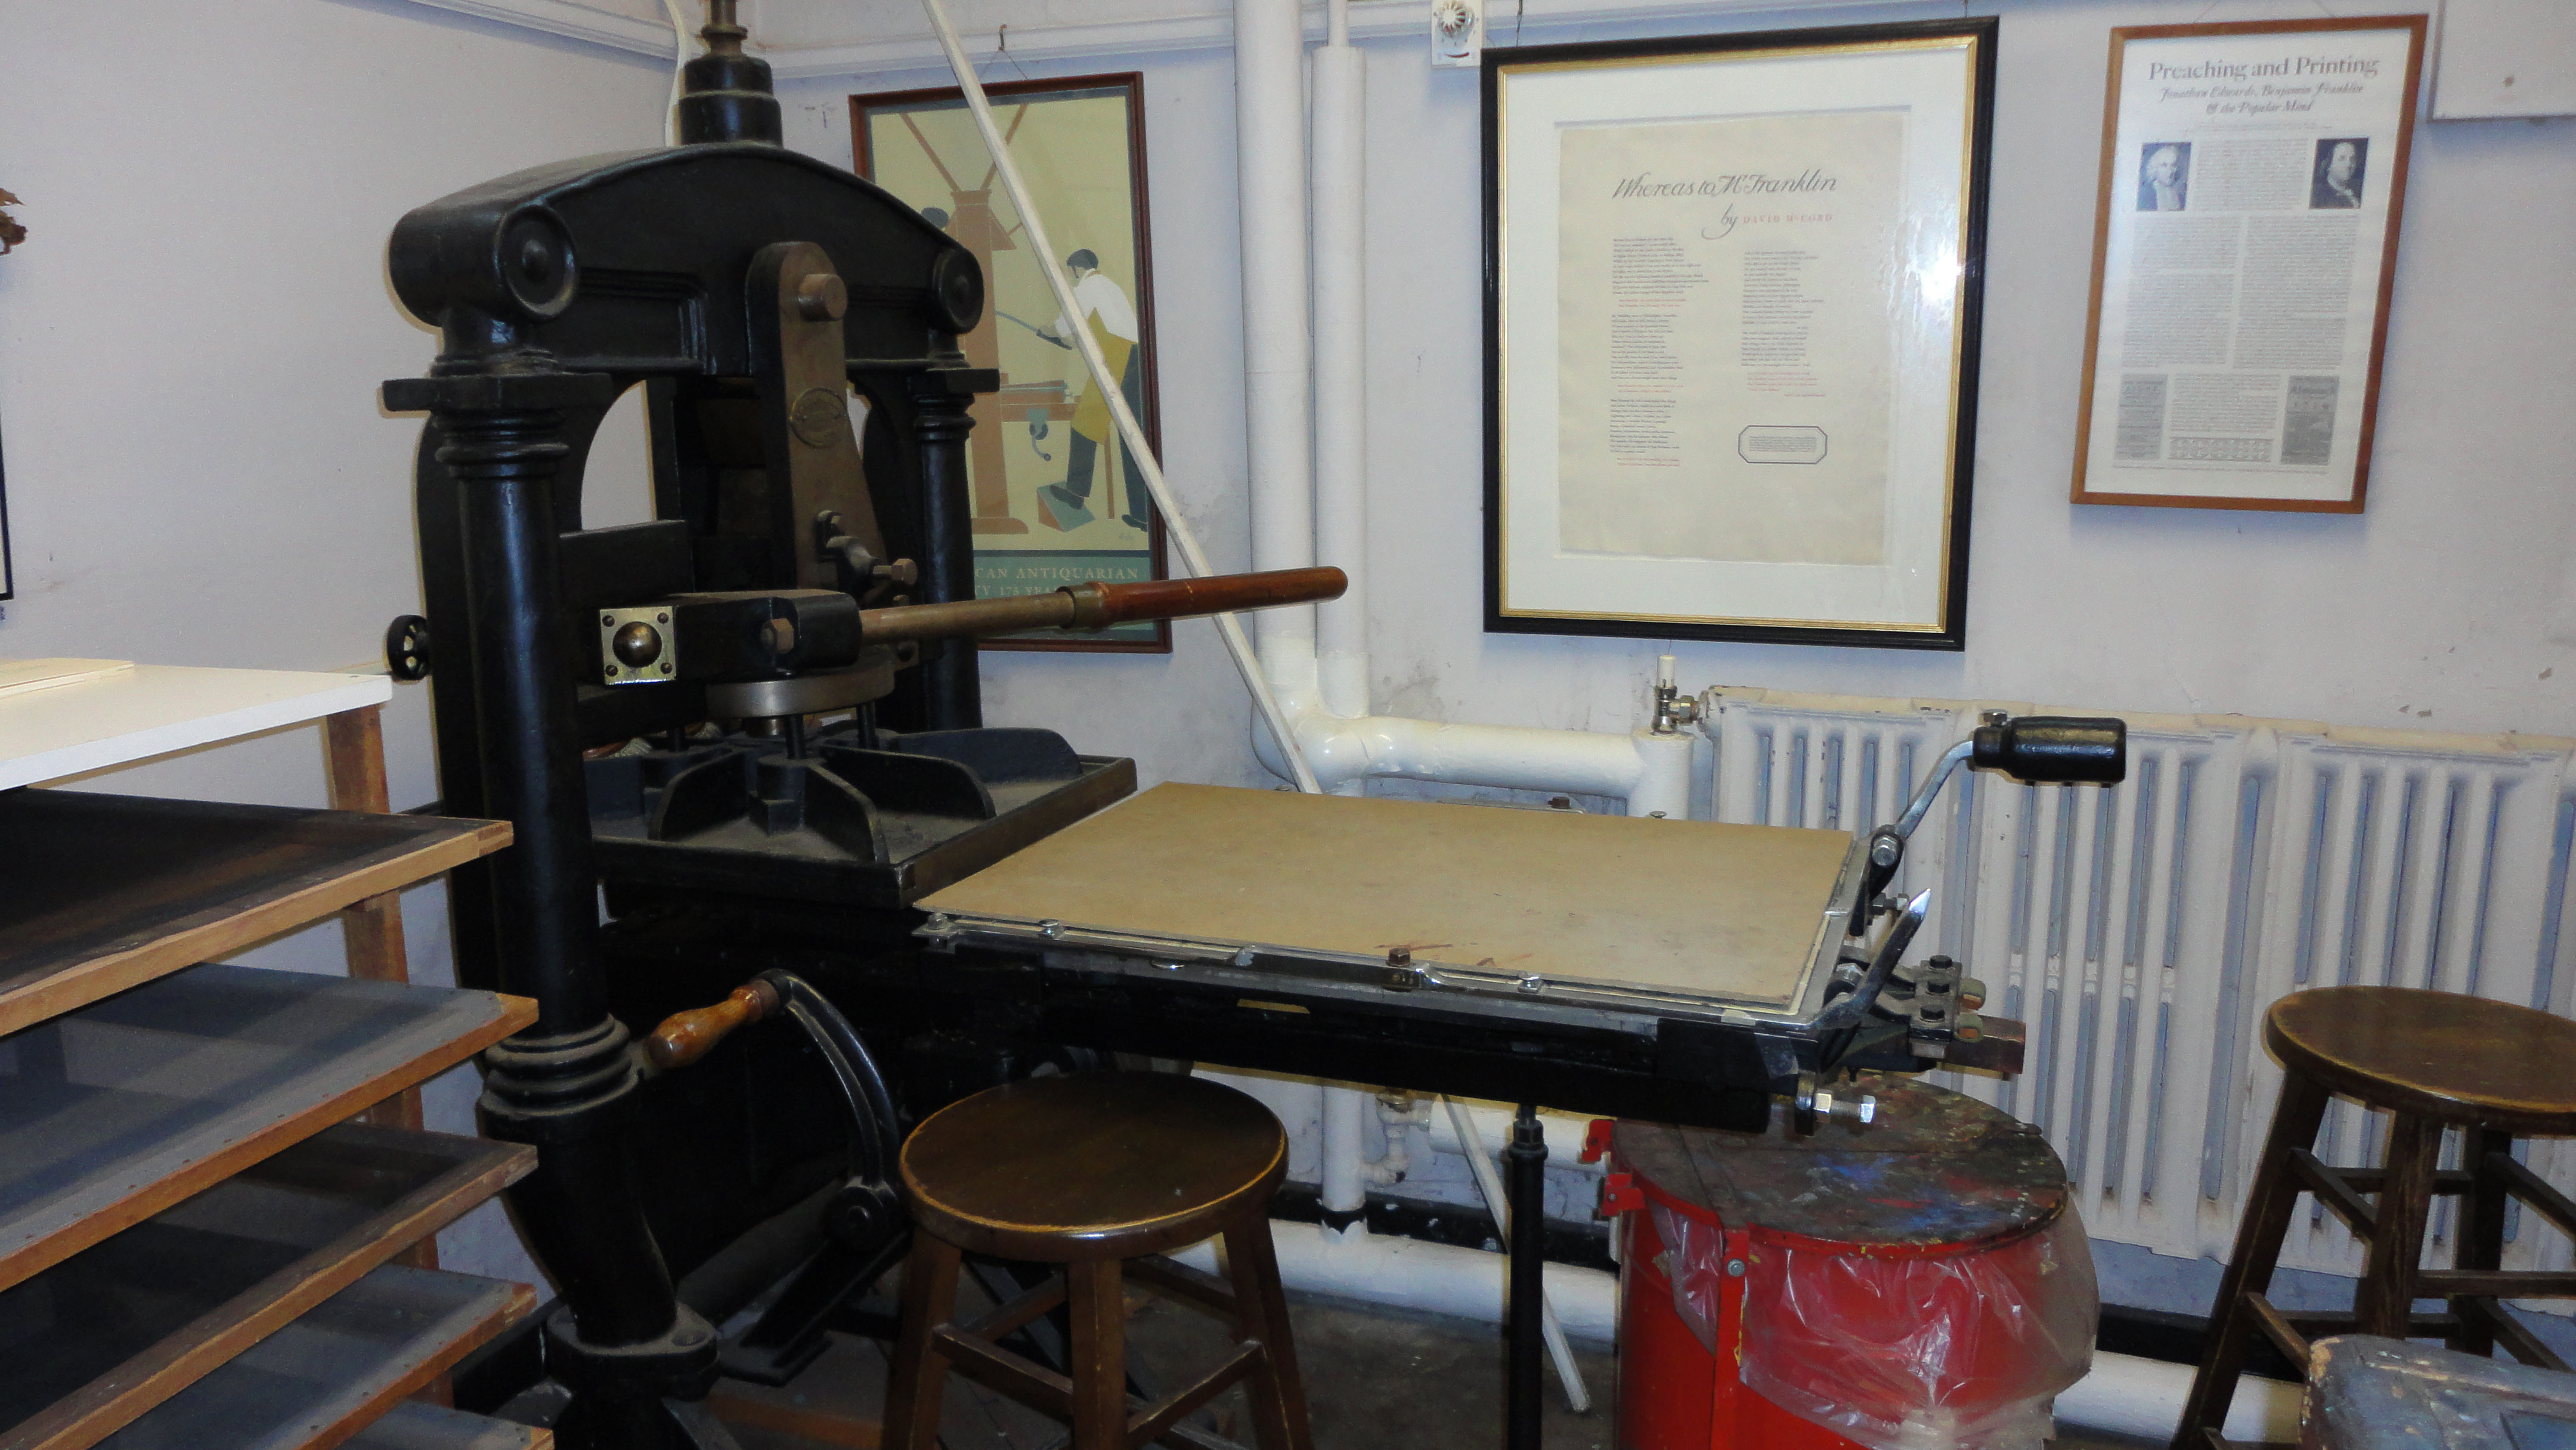 The Albion Press